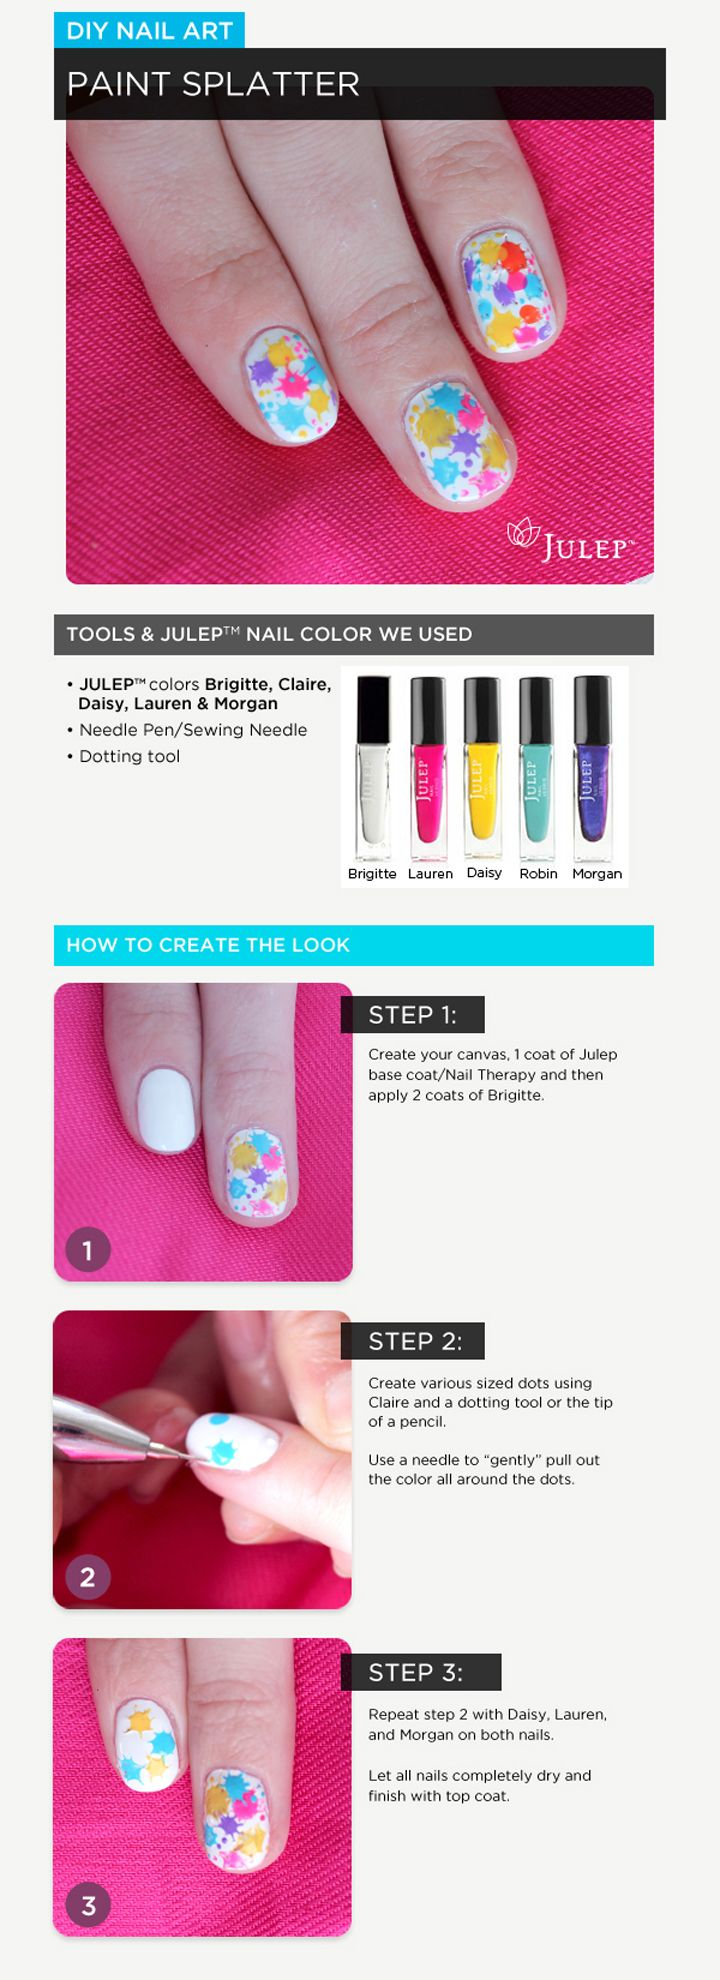 Beauty Bender partnered up with @Julep to make this super easy, #DIY nail art tutorial. Get the look at home with this Paint Splatter How-To